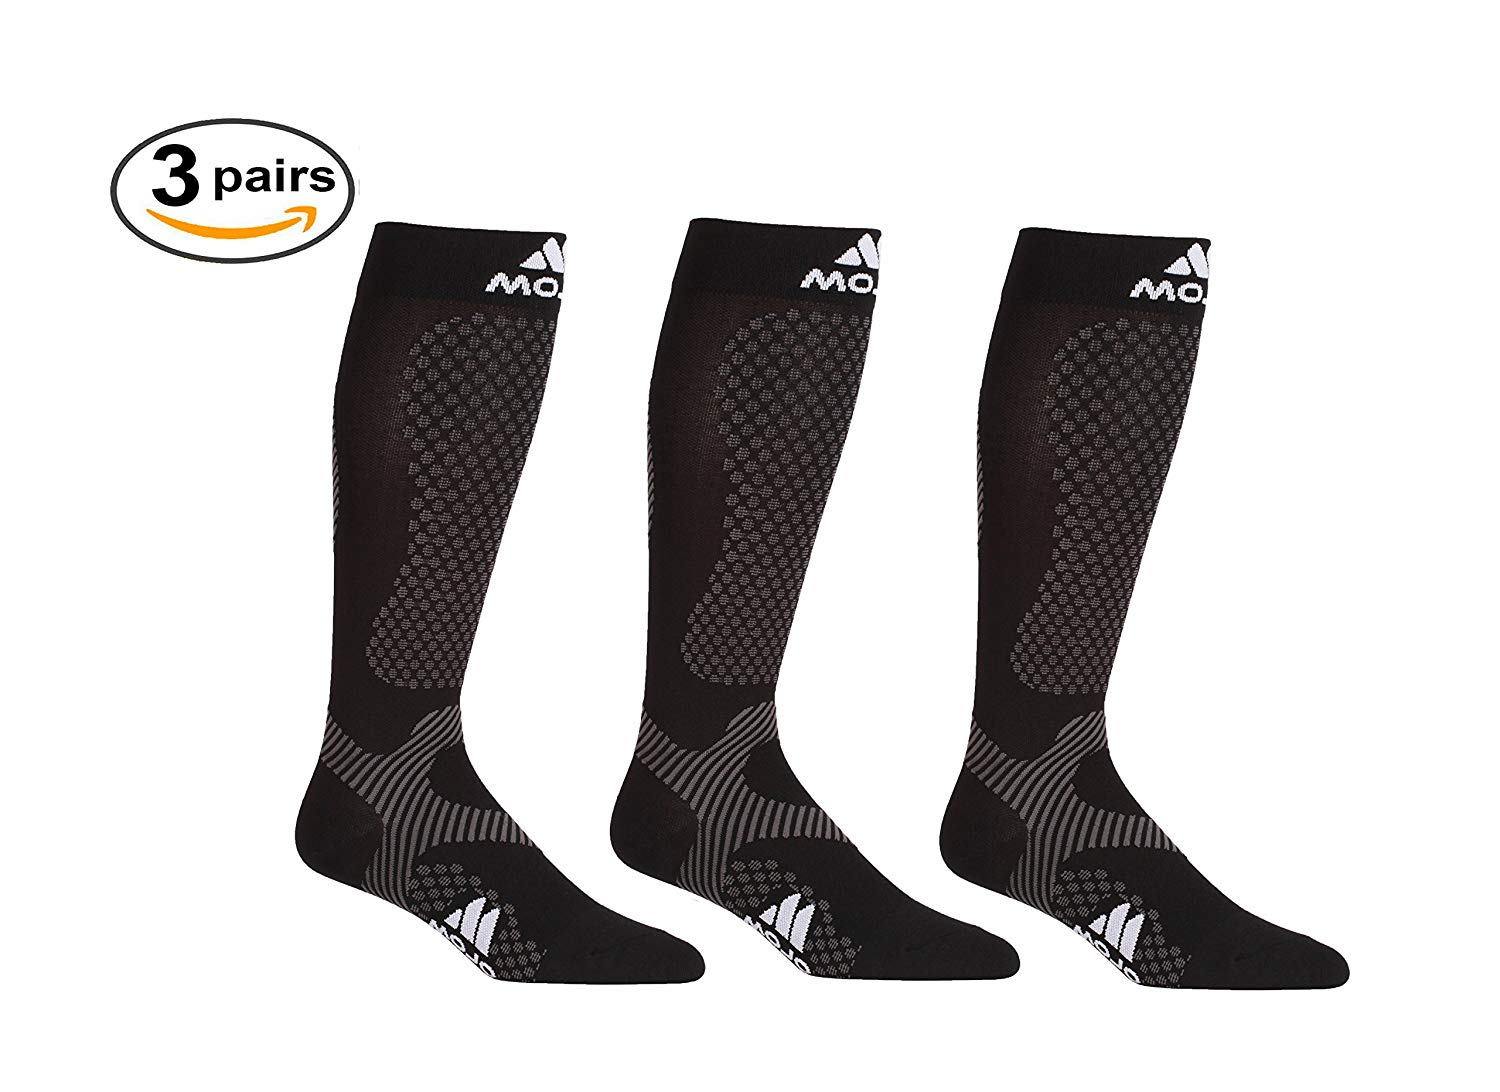 0833c037ff Get Quotations · 3 Pack Compression Socks - Mojo for Performance & Recovery  (Large, Black (3